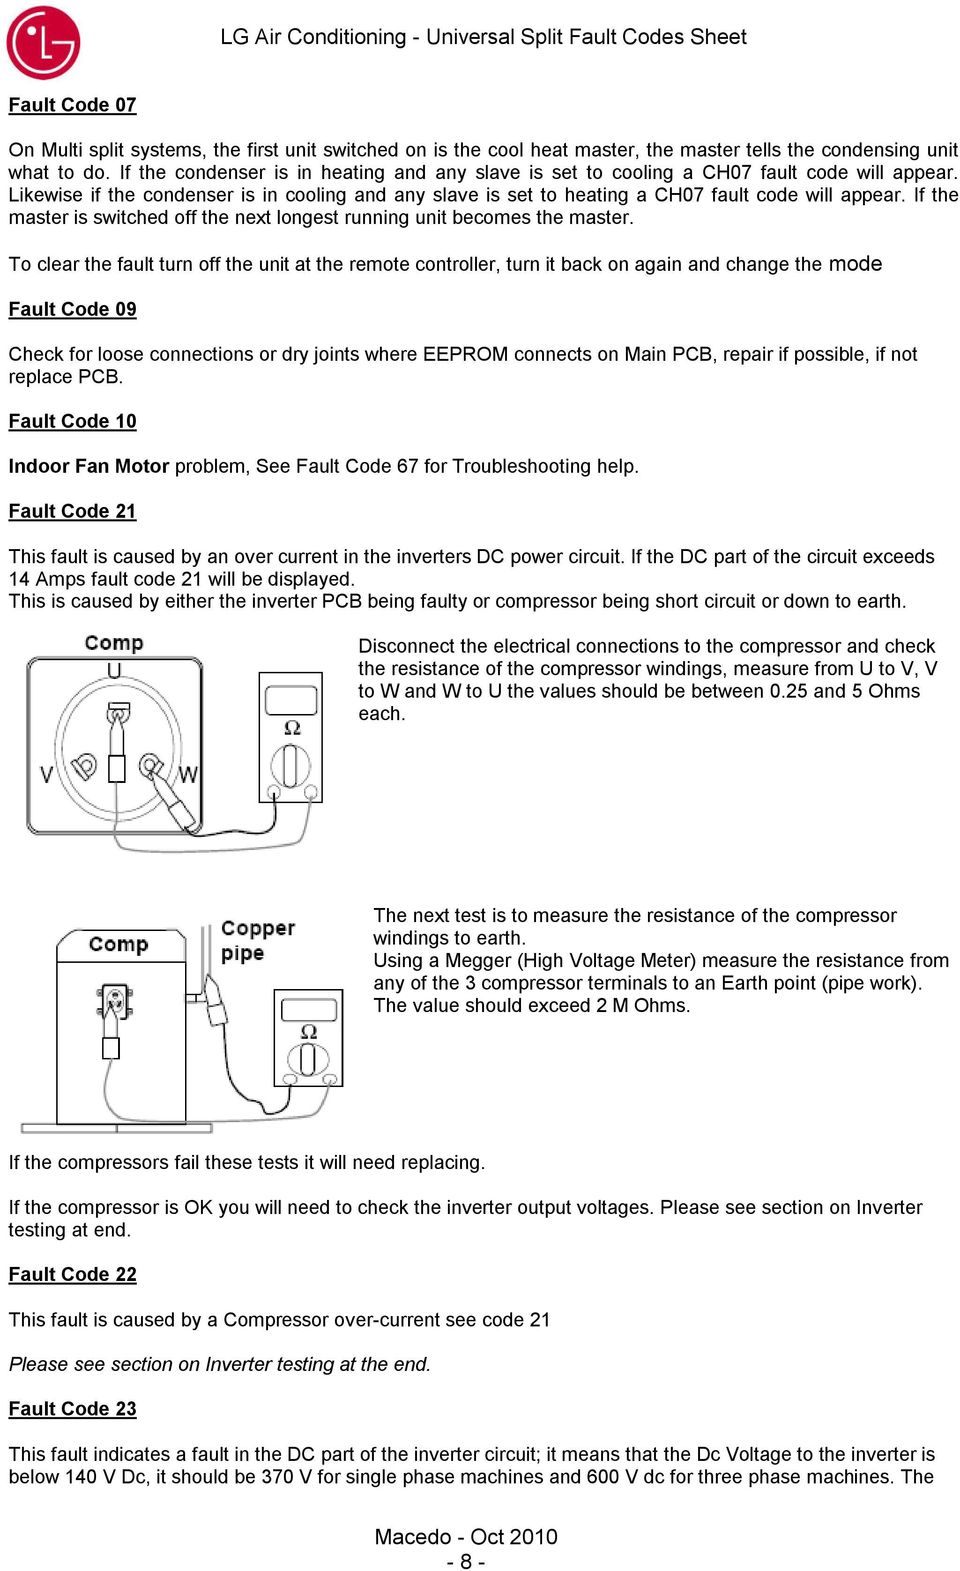 LG Air Conditioning - Universal Split Fault Codes Sheet